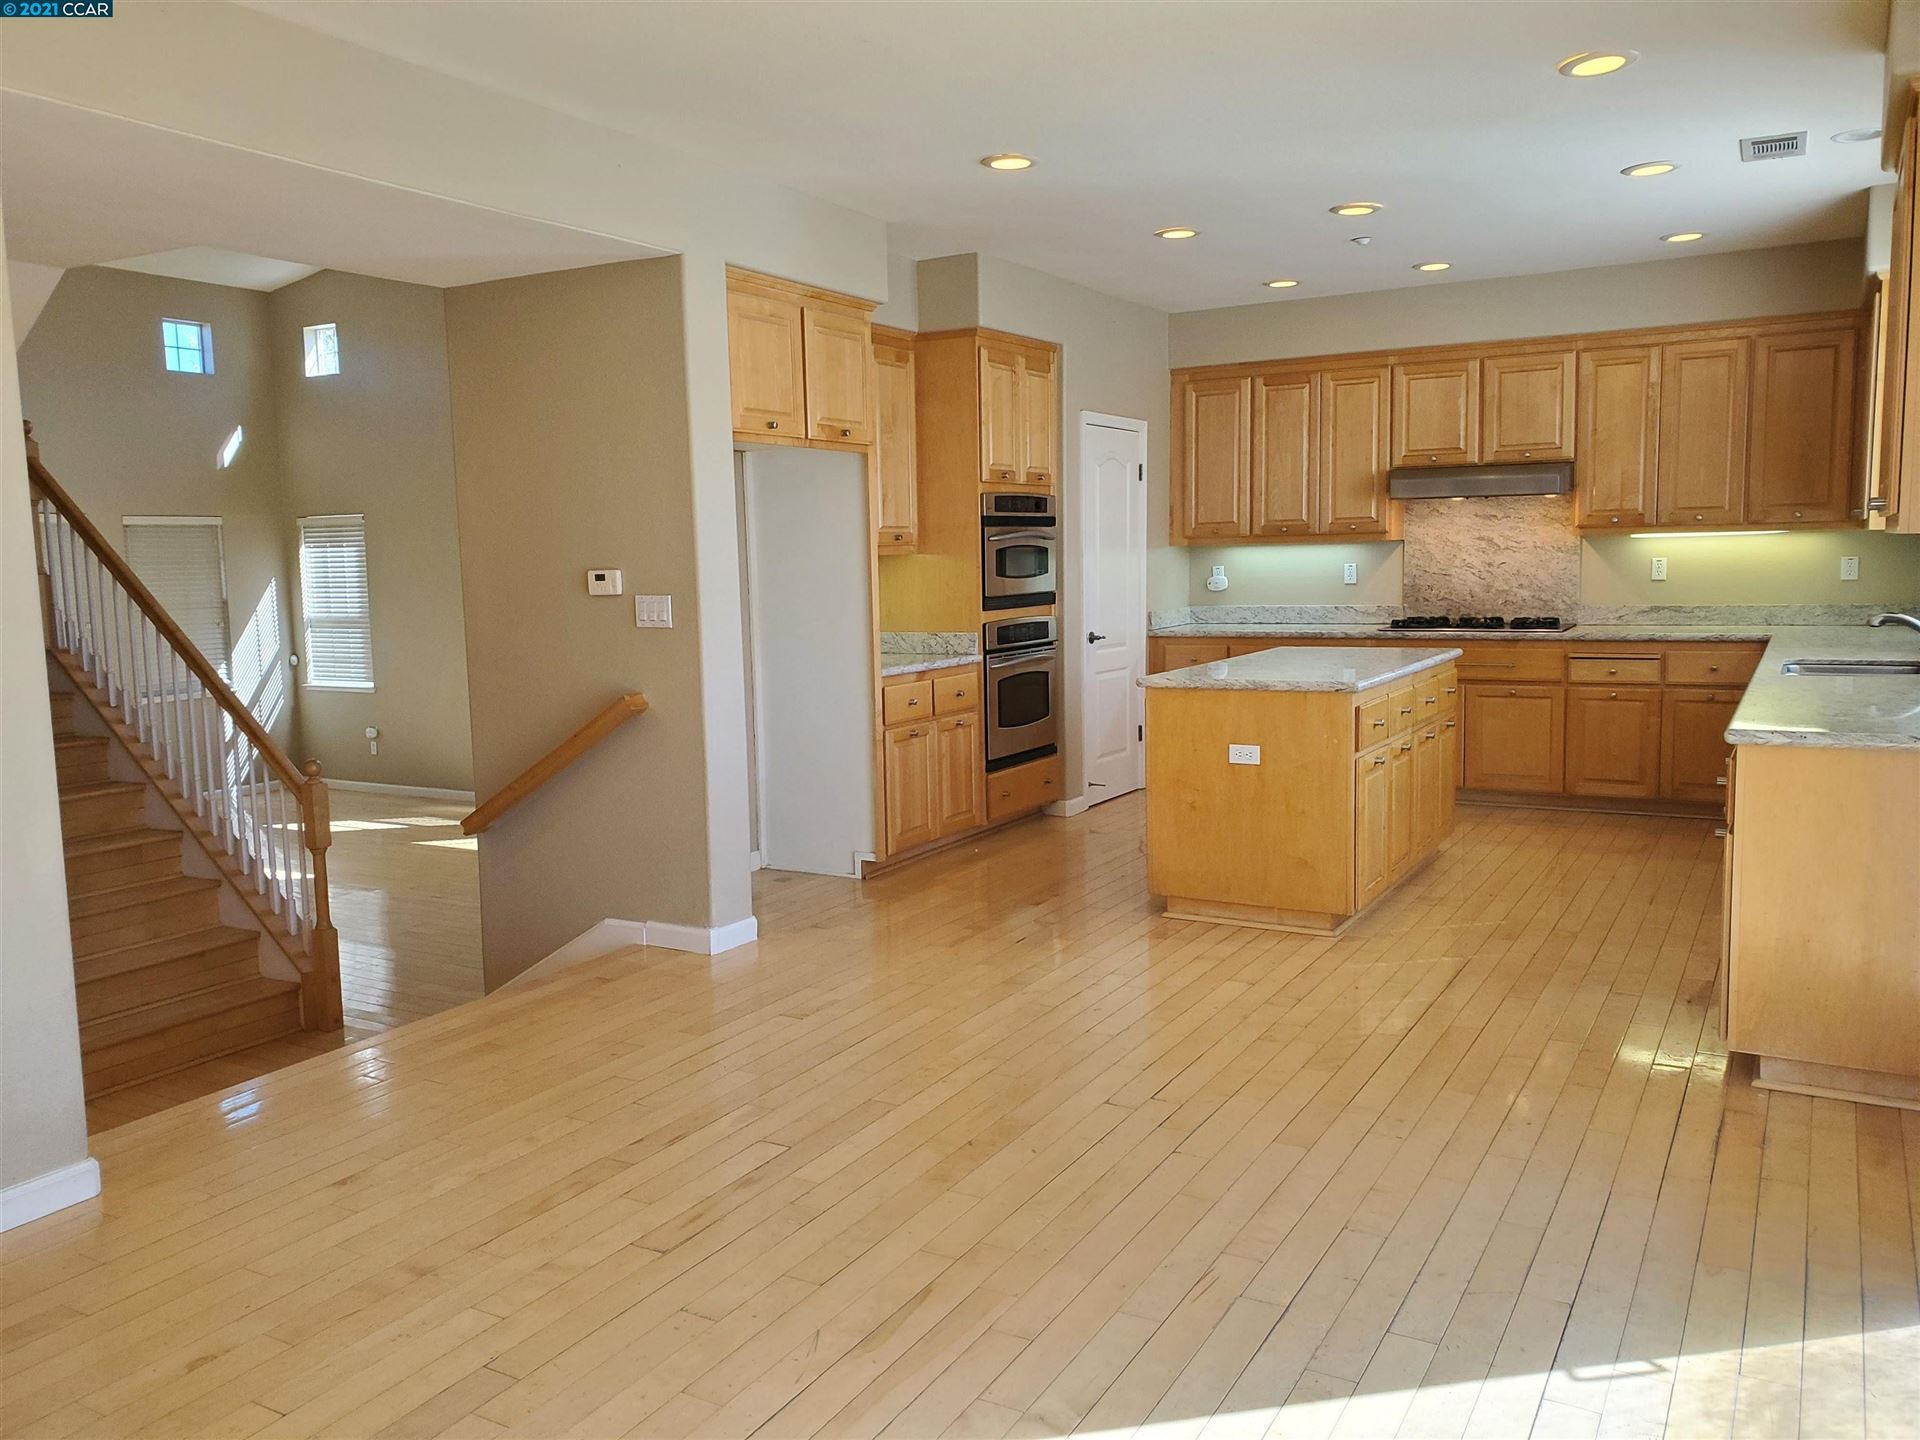 Photo of 357 Roundhill Dr, Brentwood, CA 94513 (MLS # 40969747)